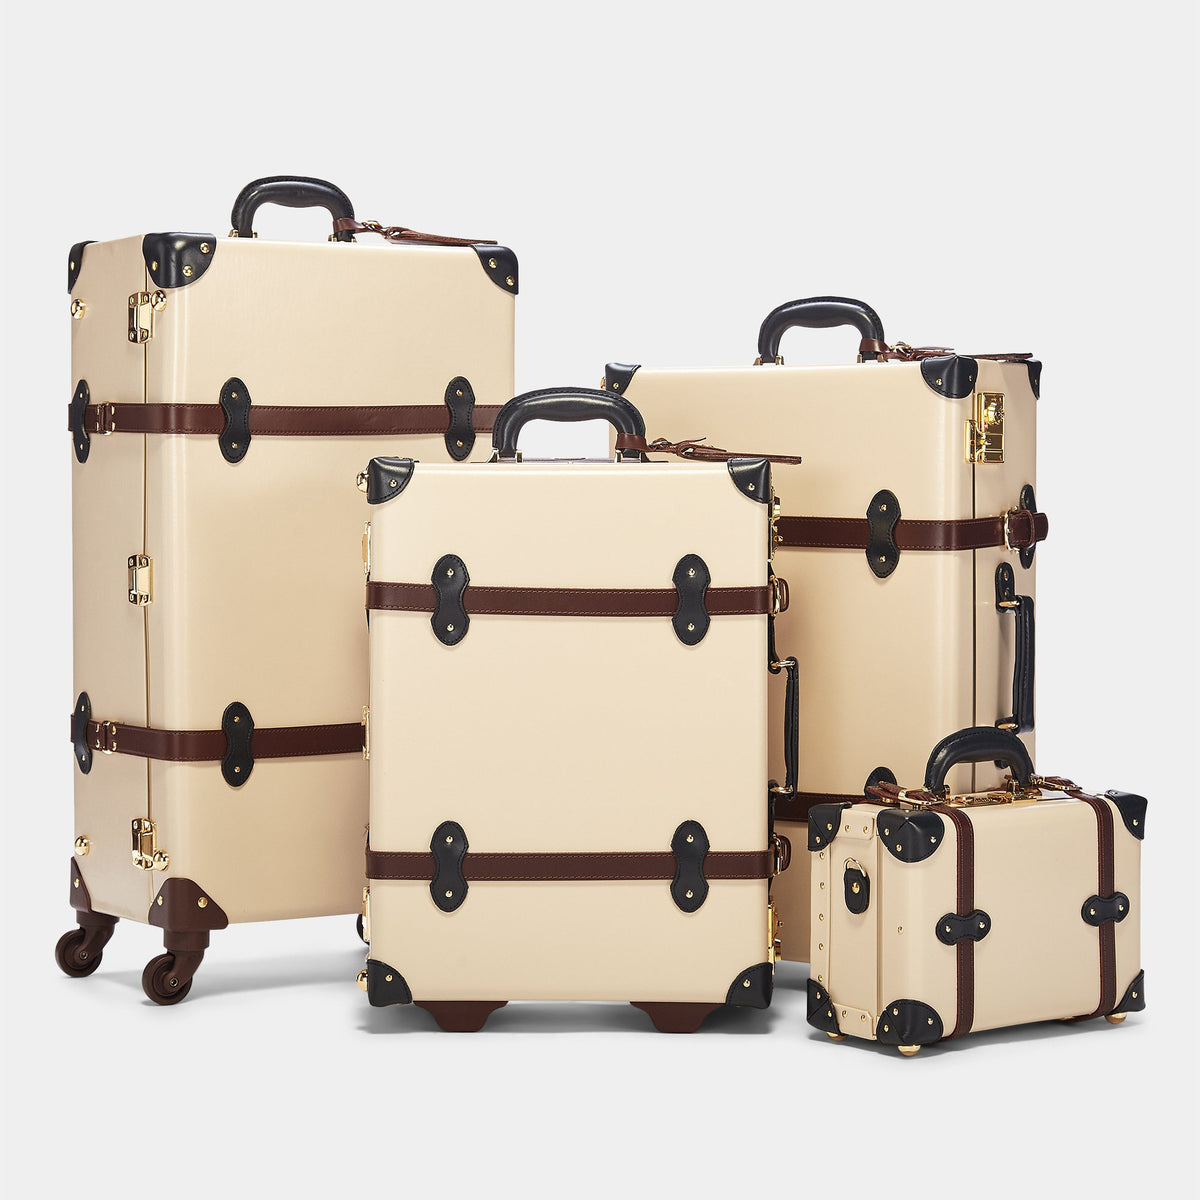 The Architect Carryon in Cream - Vintage Style Leather Case - Alongside matching cases from The Architect Cream collection